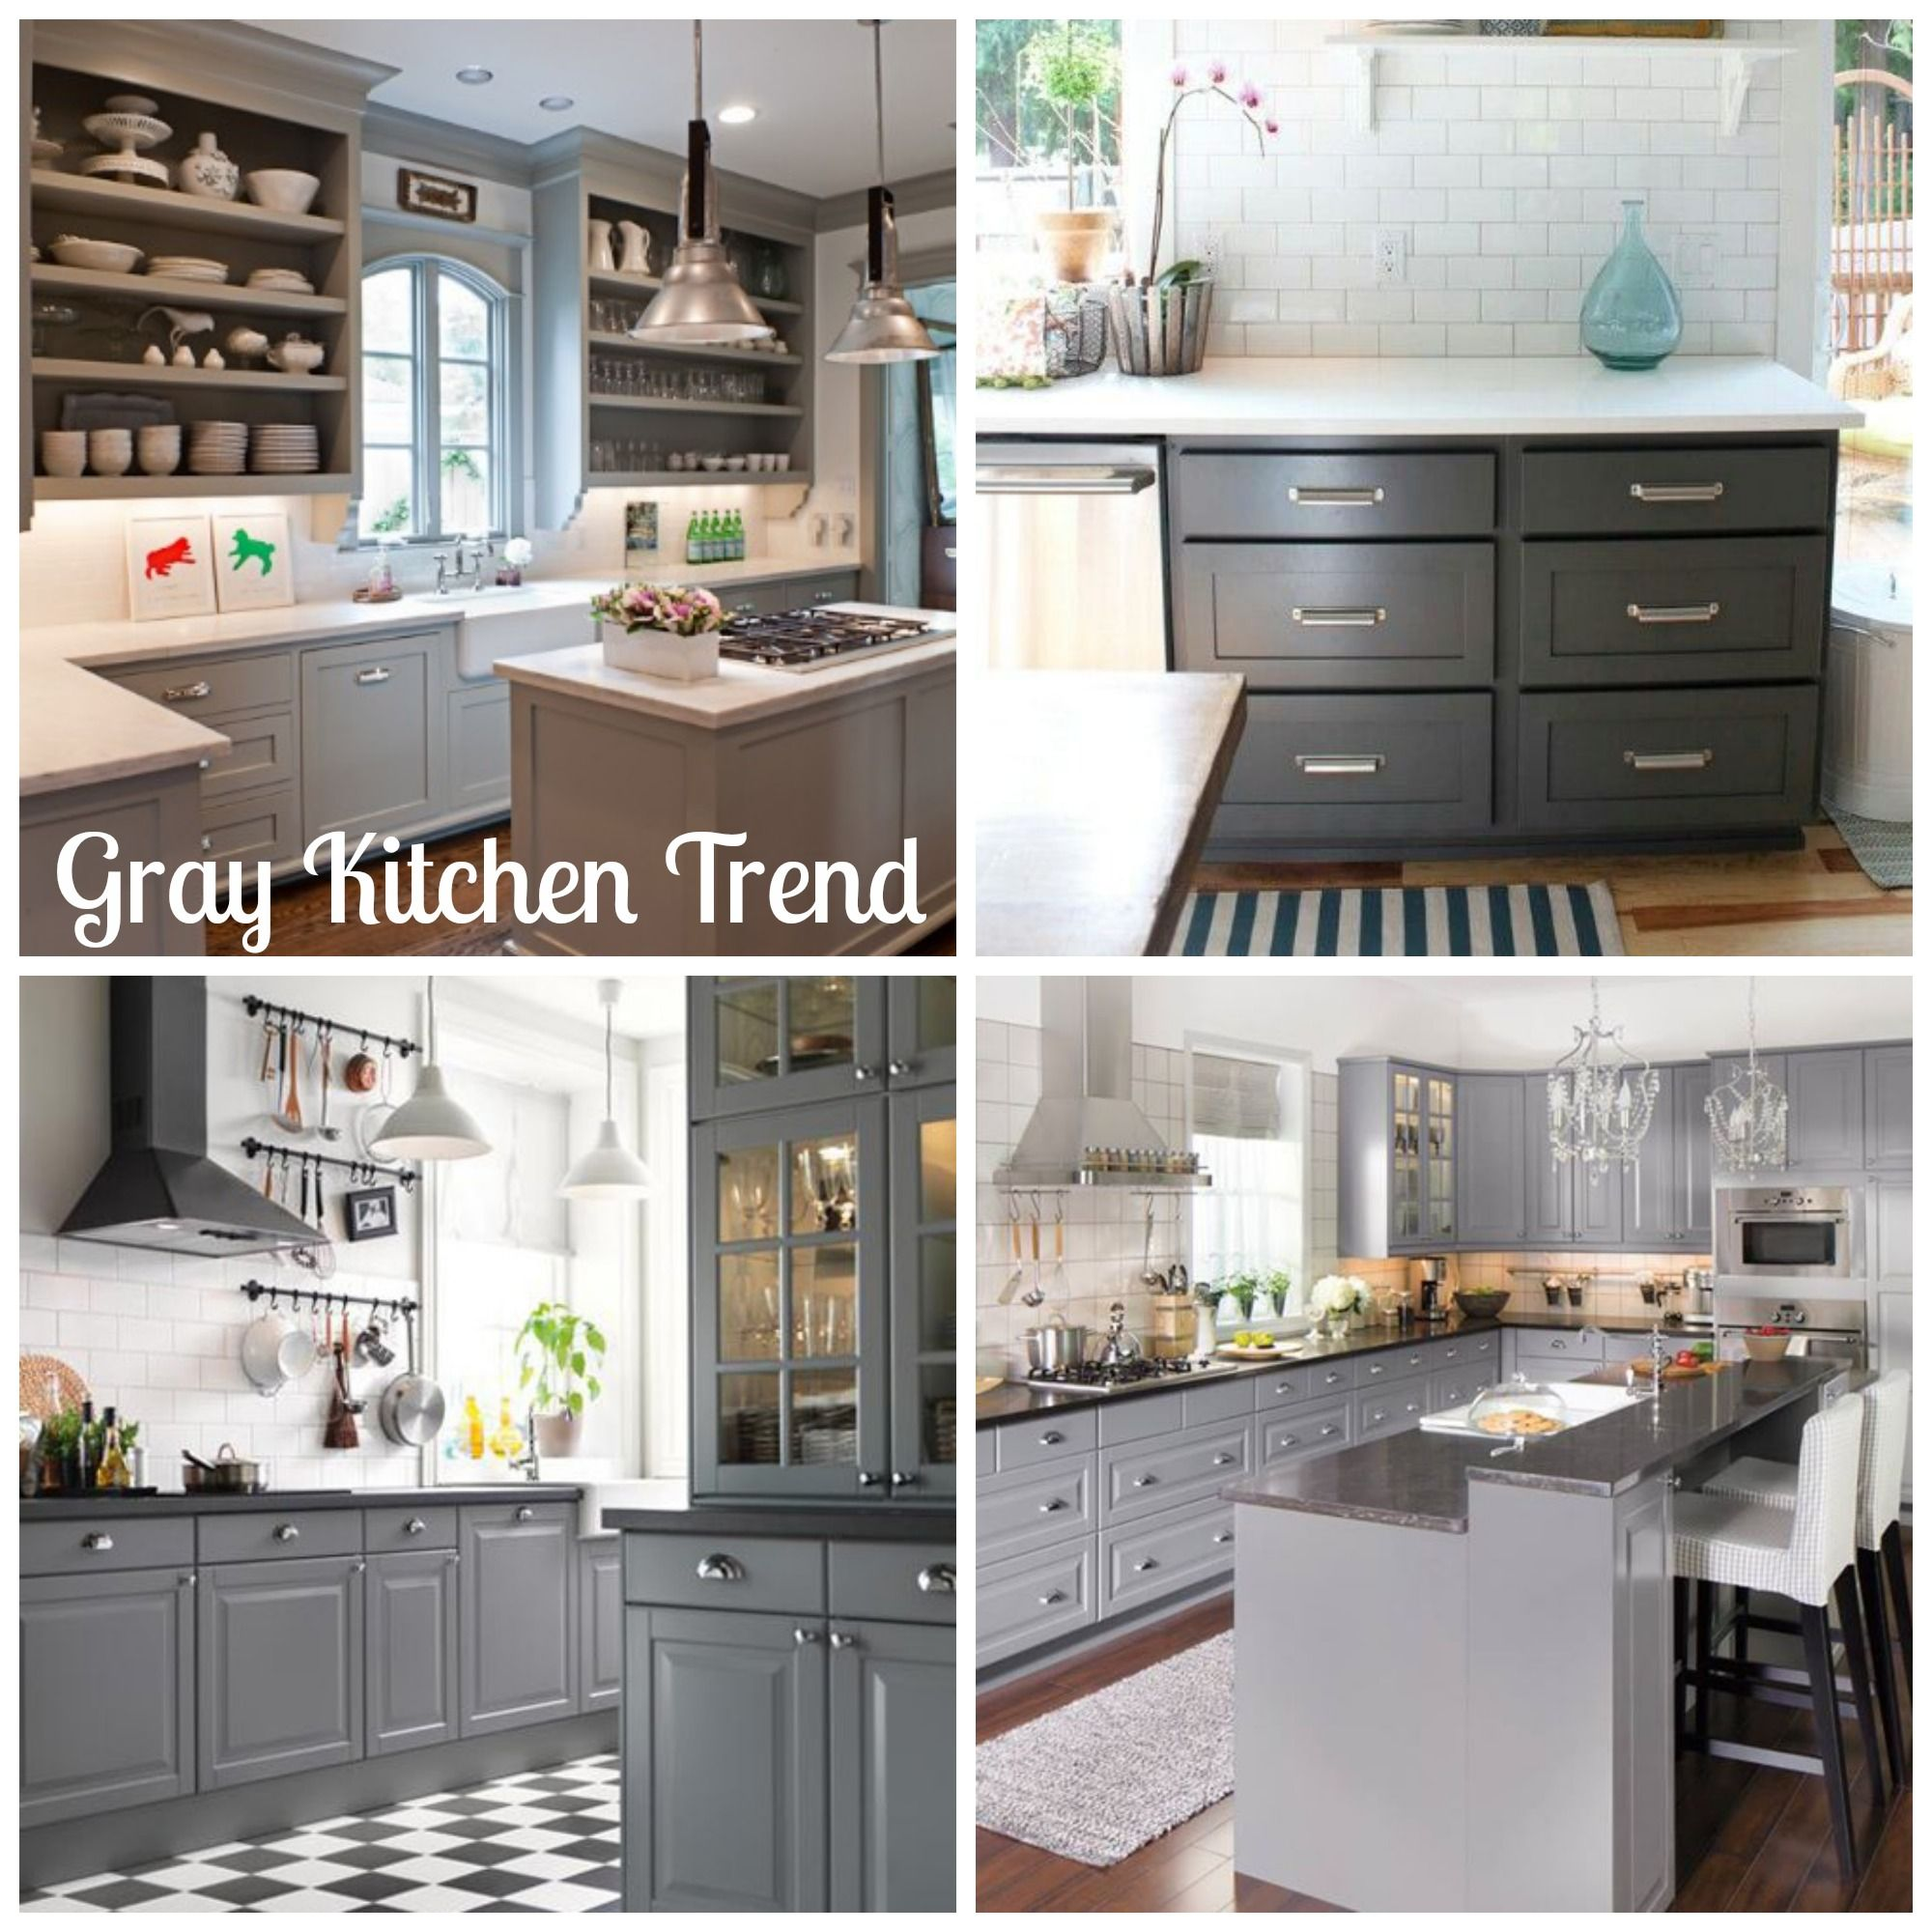 Diy Paint Kitchen Cabinets White: Inspiration! If You Aren't Into Trendy Bold Colors But Don